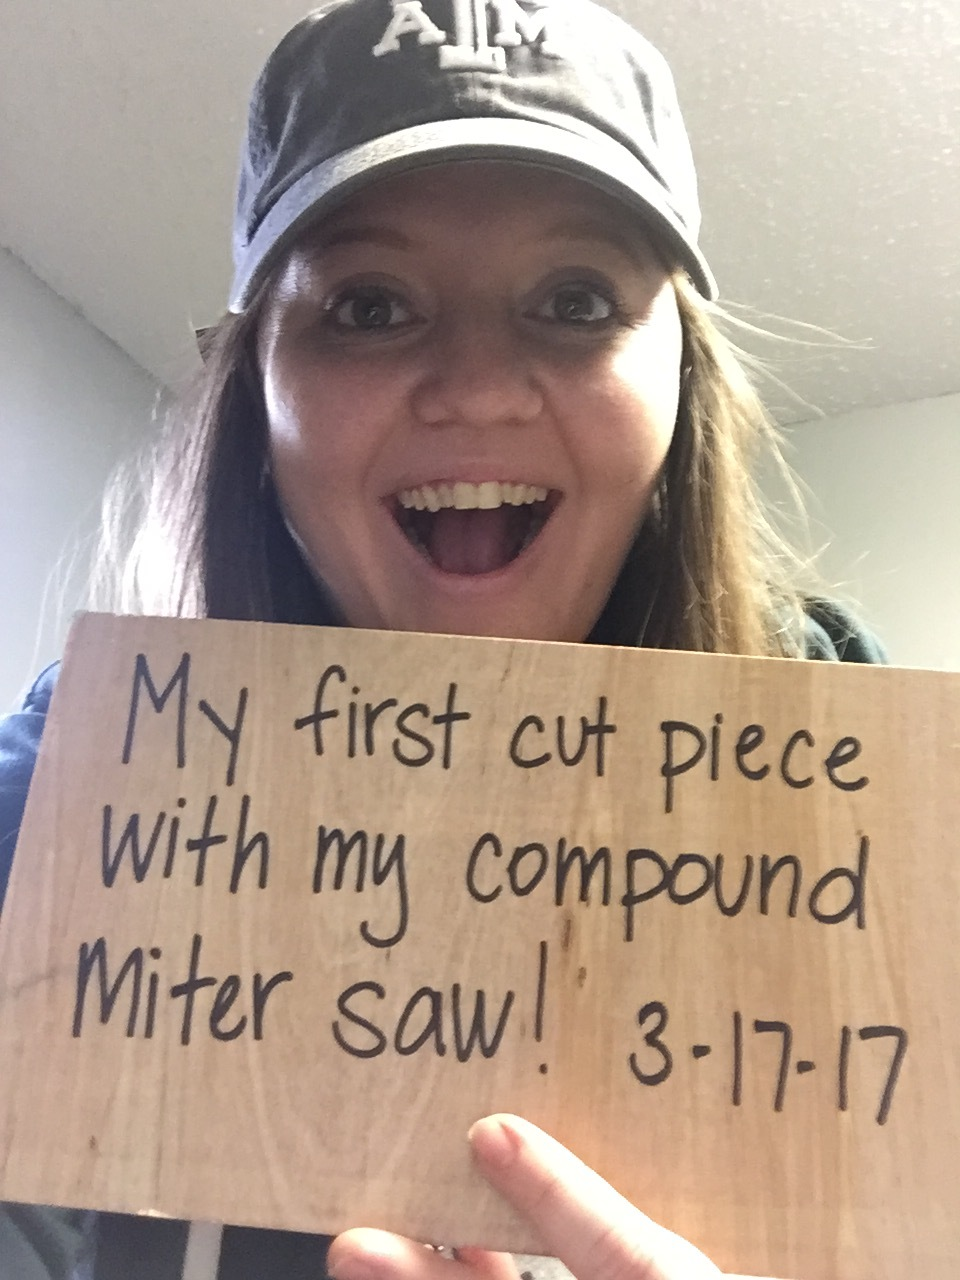 This photo is from about a month ago after I just received a miter saw for a gift. I was legit excited.